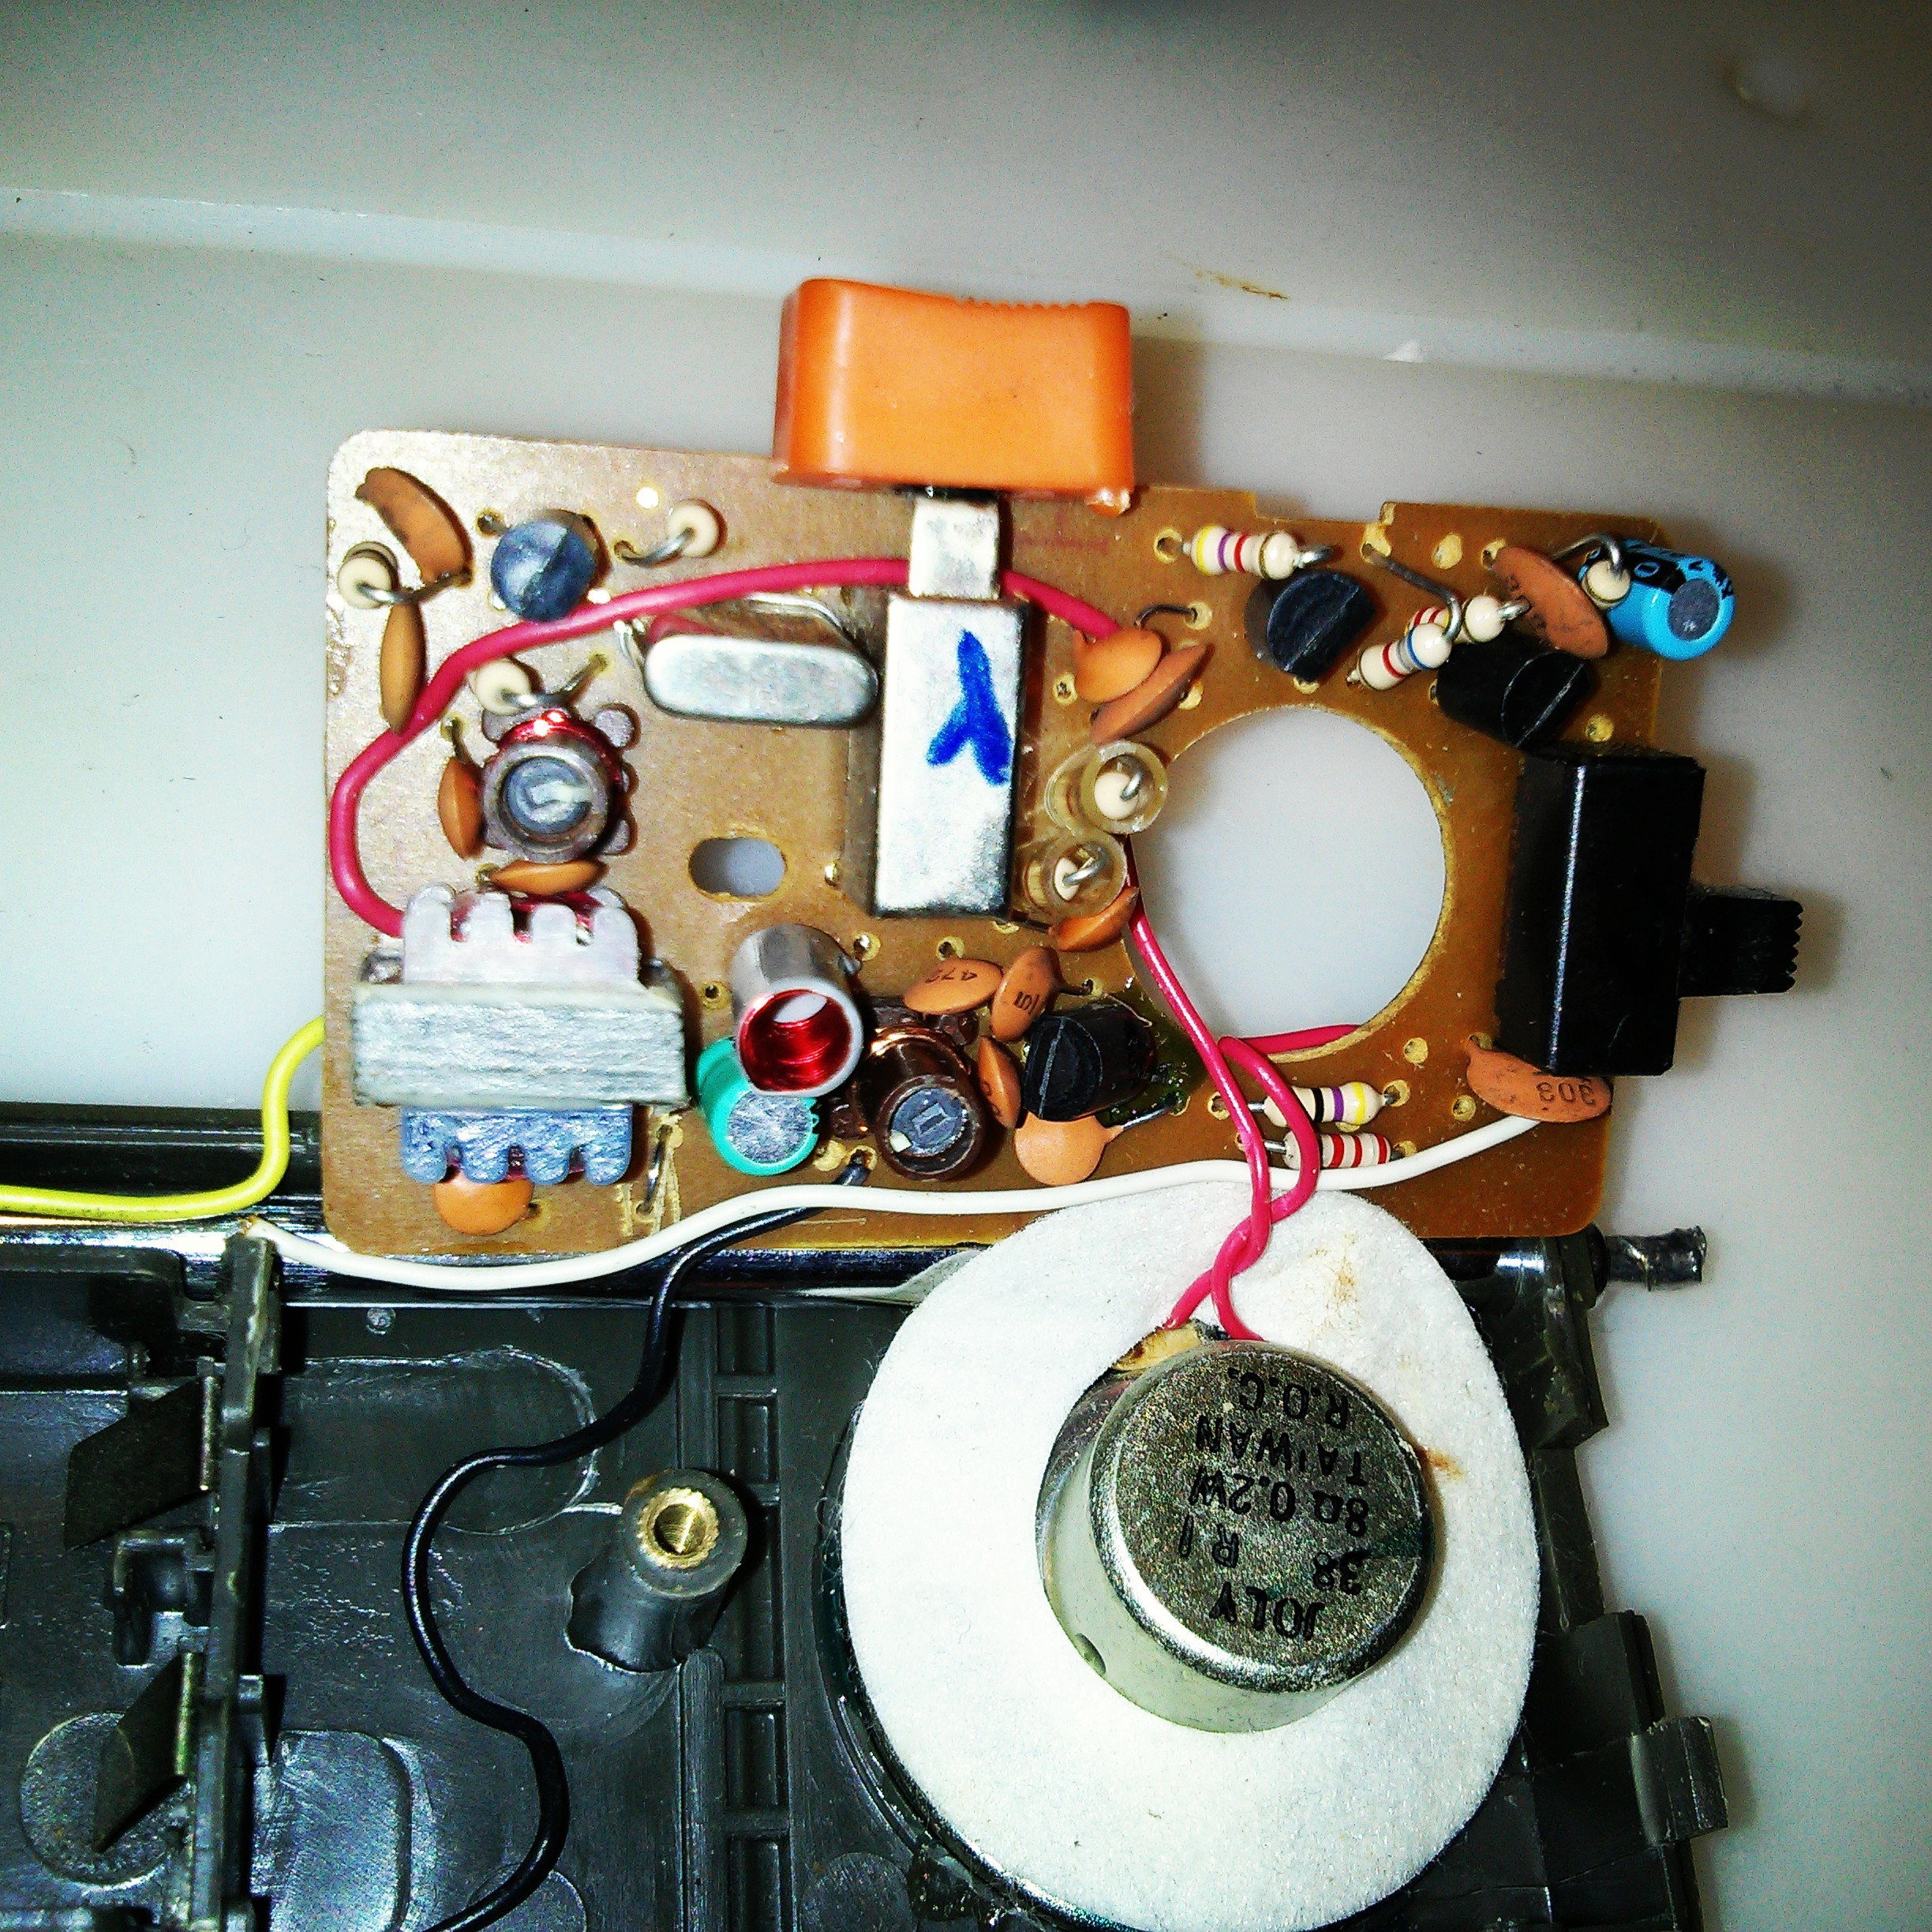 220901965060 moreover Swt8 likewise 89286 Series Parallel Switch Back Speaker Cab additionally  furthermore Switches. on double throw switch schematic